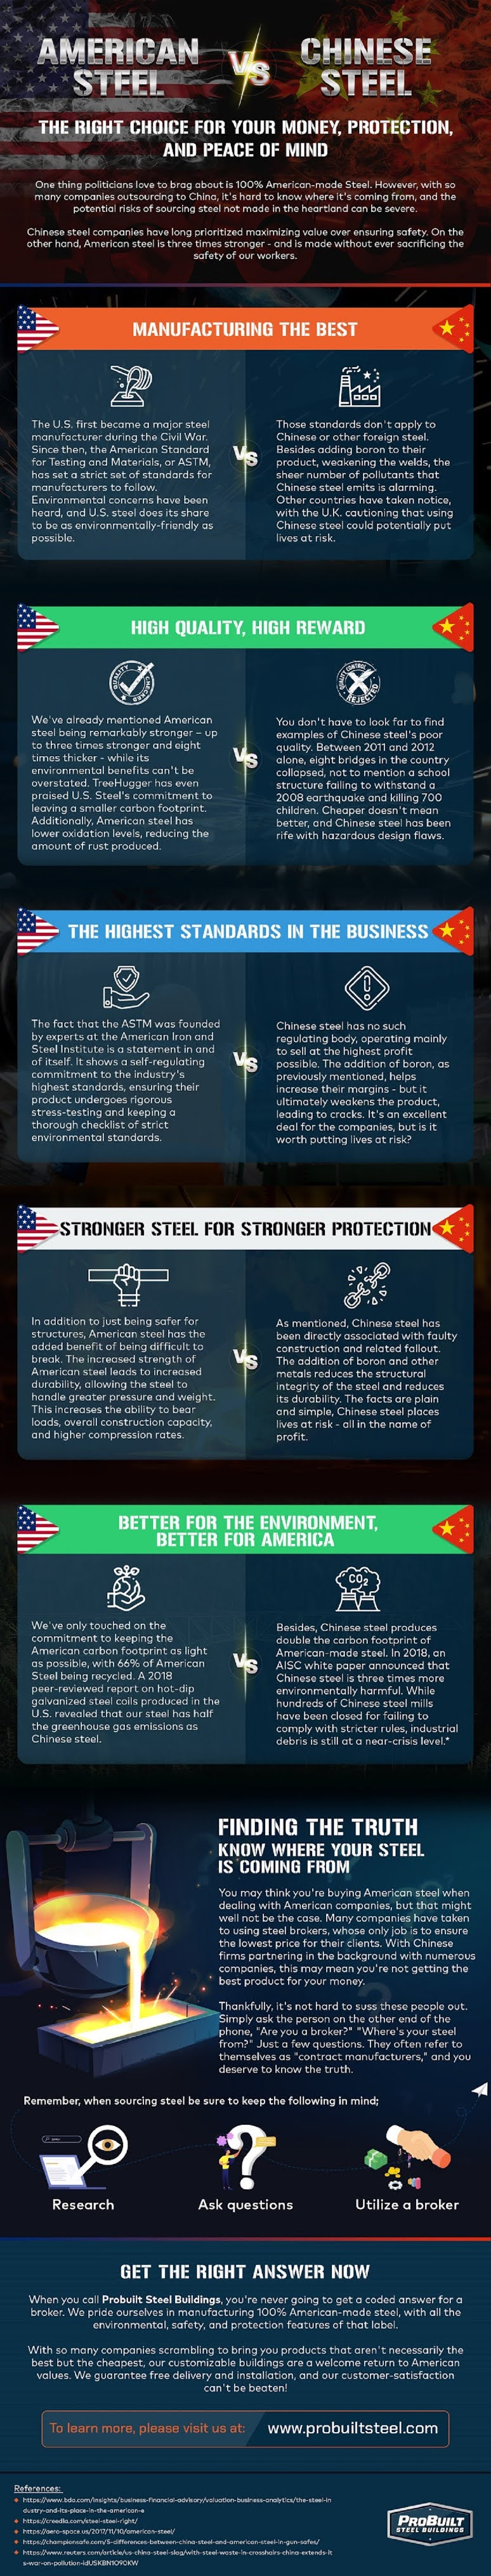 american-vs-chinese-steel-the-best-price-is-not-always-the-best-option-infographic